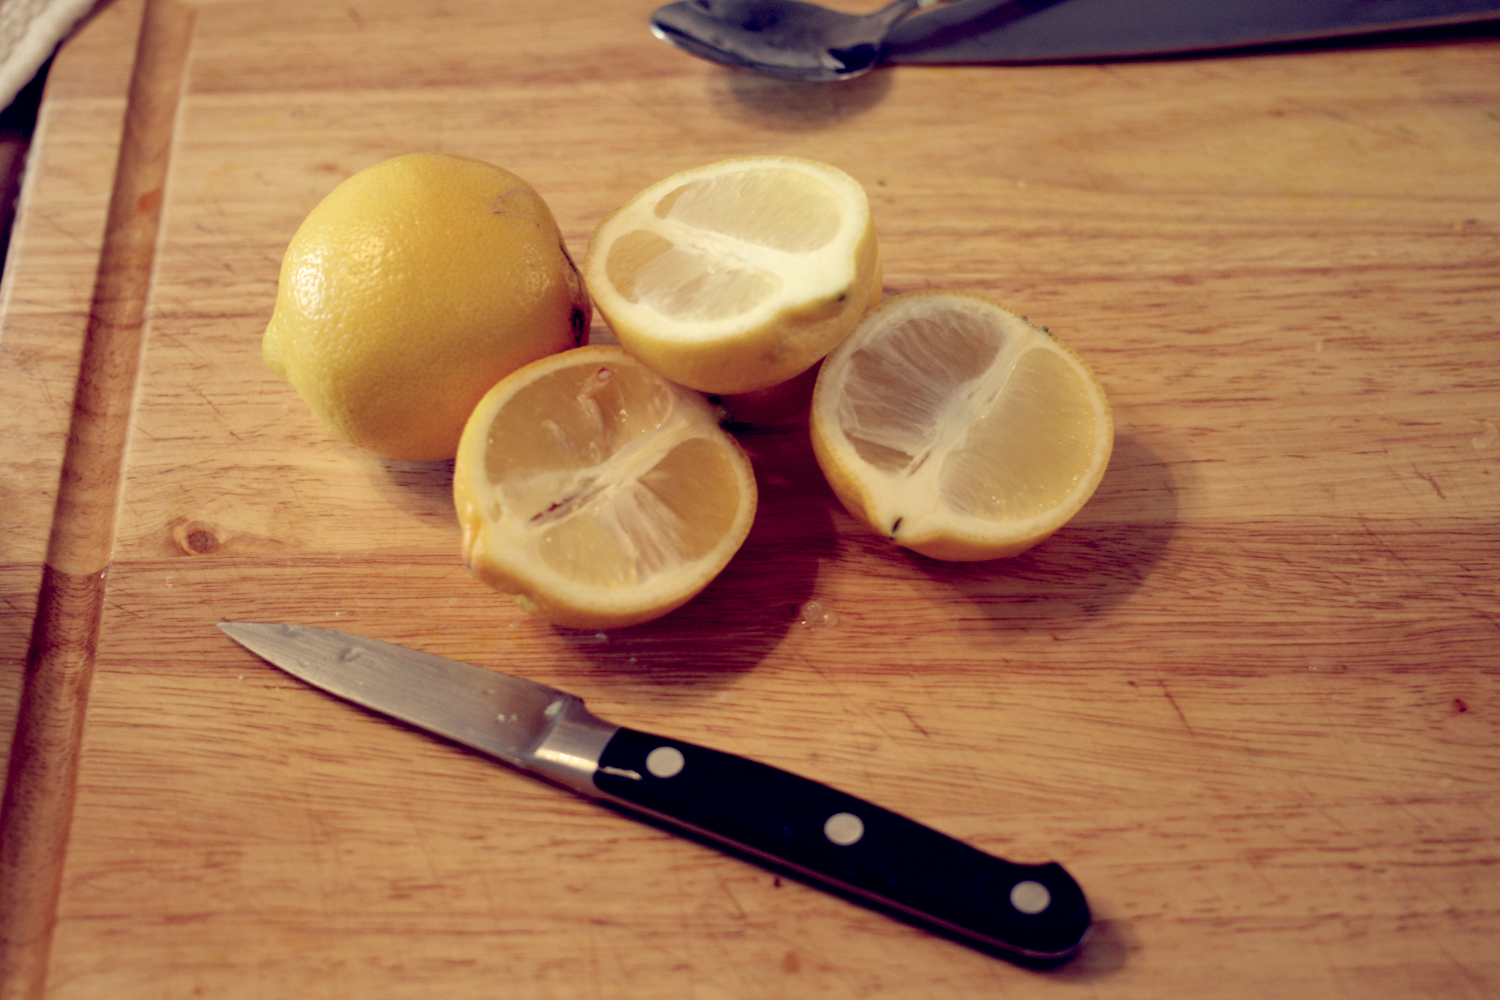 Step 1: chop the lemons